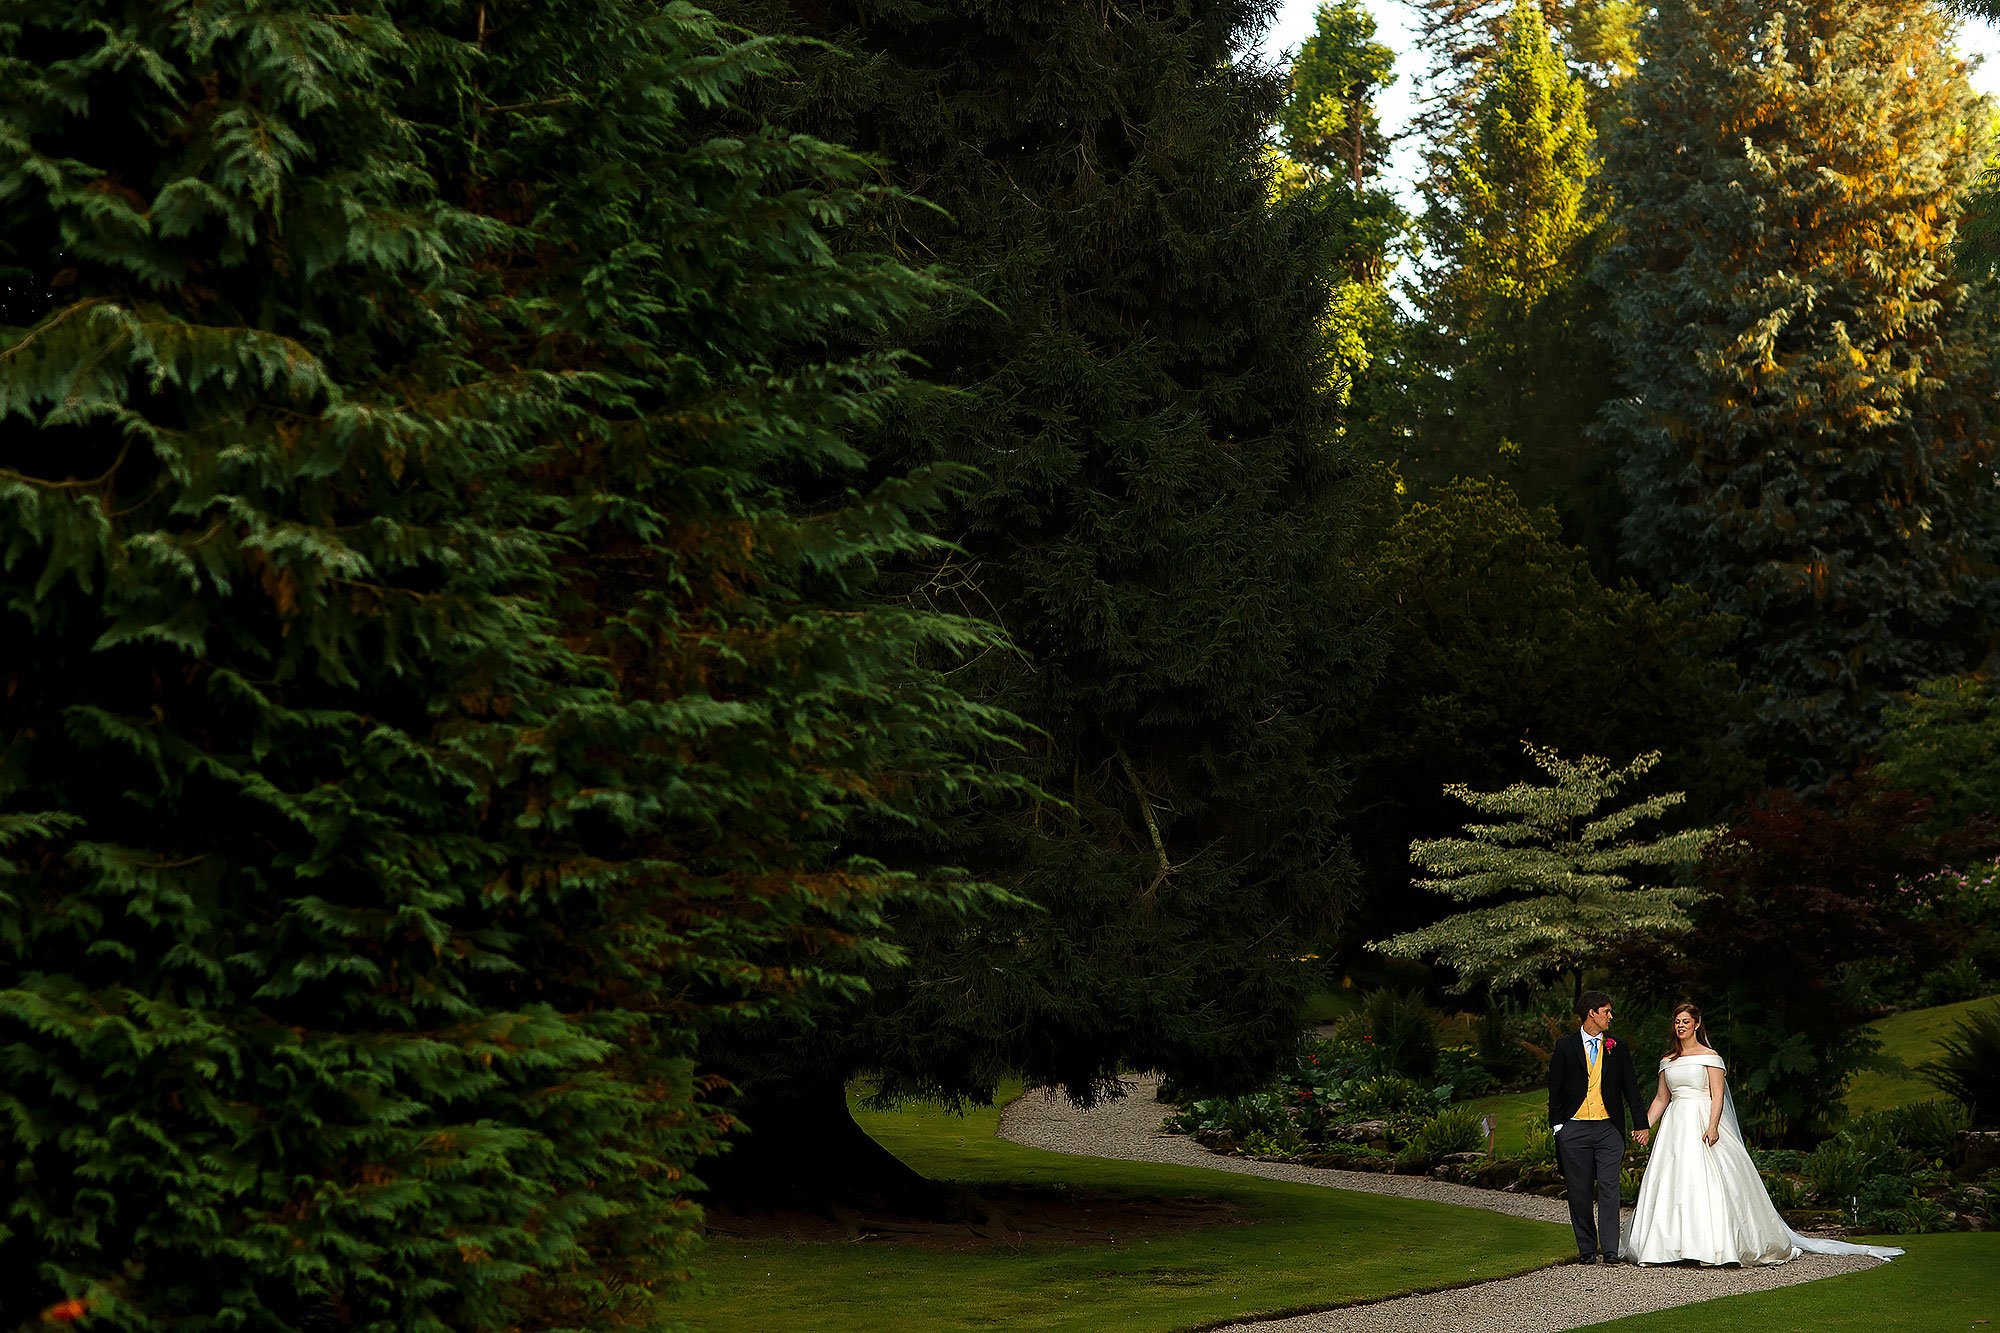 Bride and groom walking through the gardens and large fern trees down a gravel pathway hand in hand | Lake District Wedding by Toni Darcy Photography